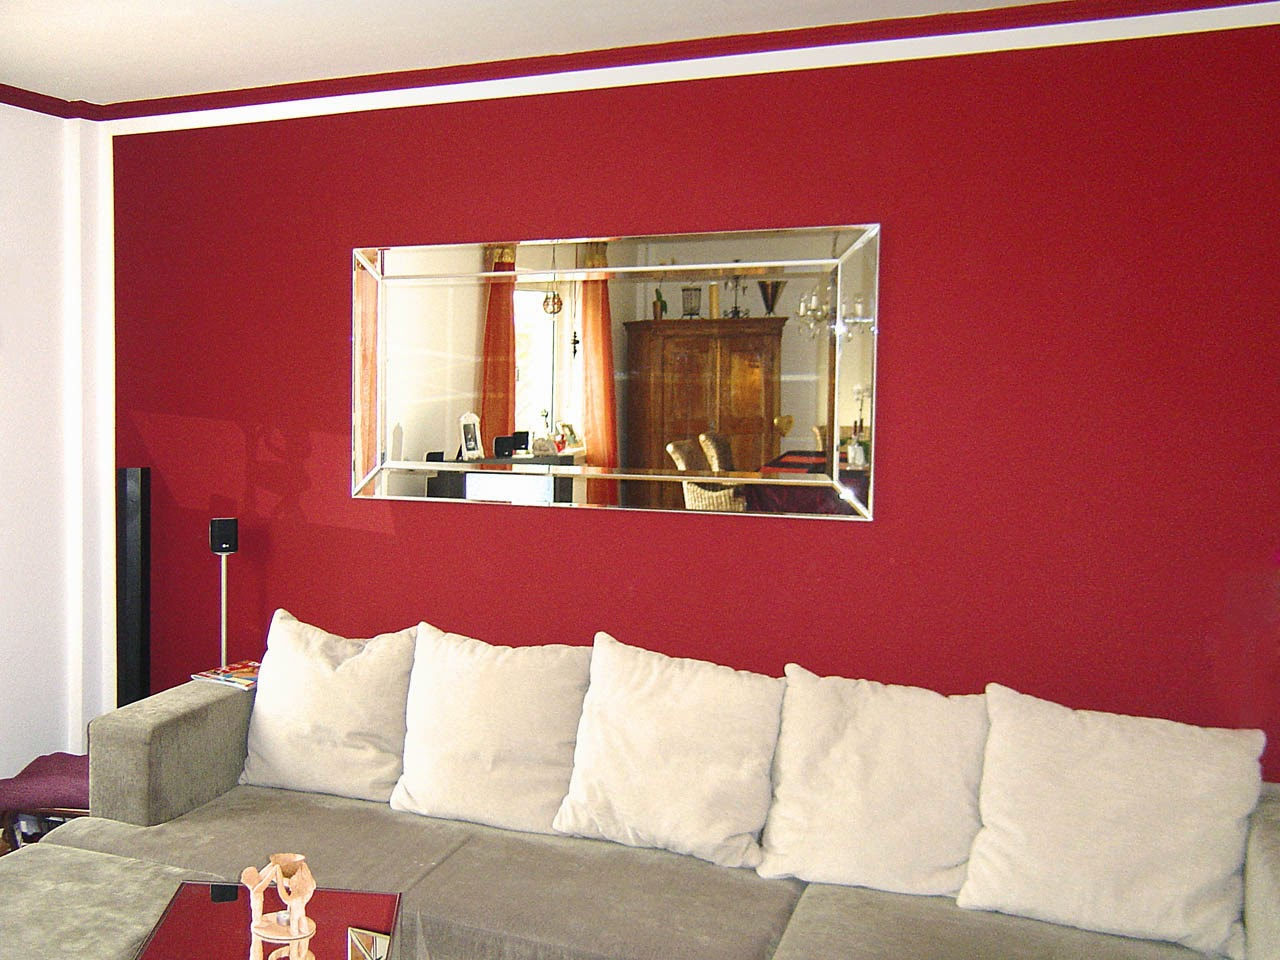 Decorilumina ideas sobre decoraci n de paredes interiores - Decoracion paredes pintura ...